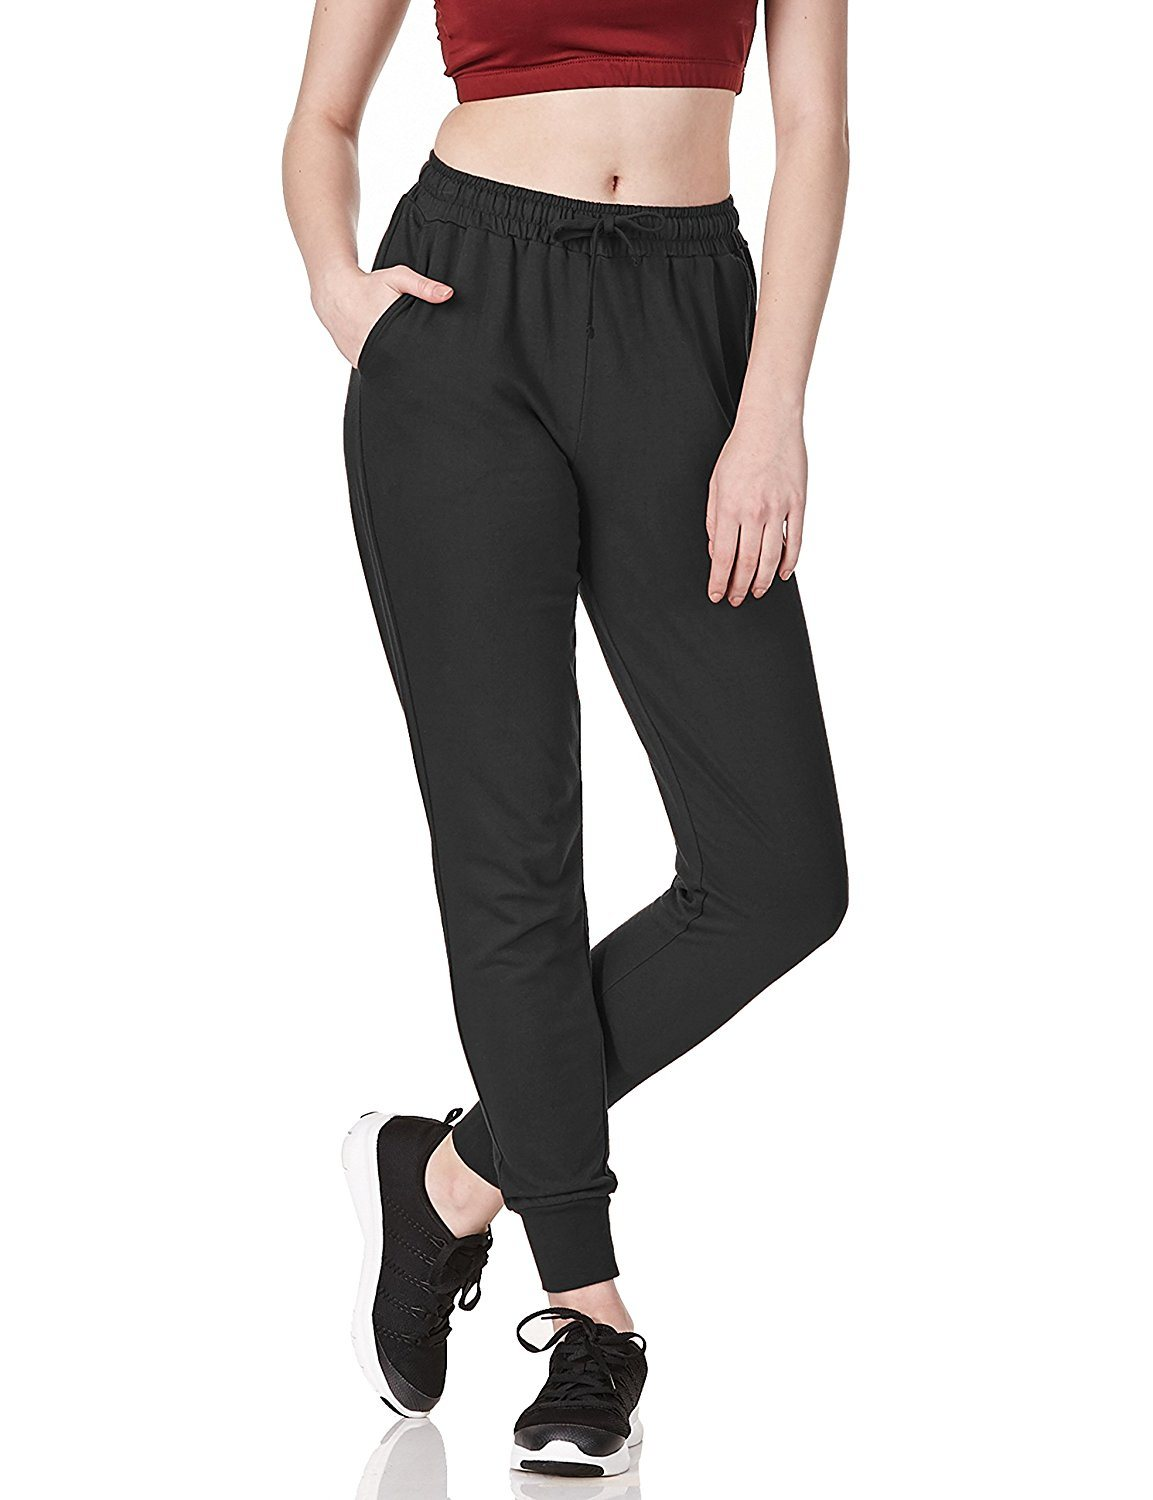 activewear wholesale track pants manufacturers